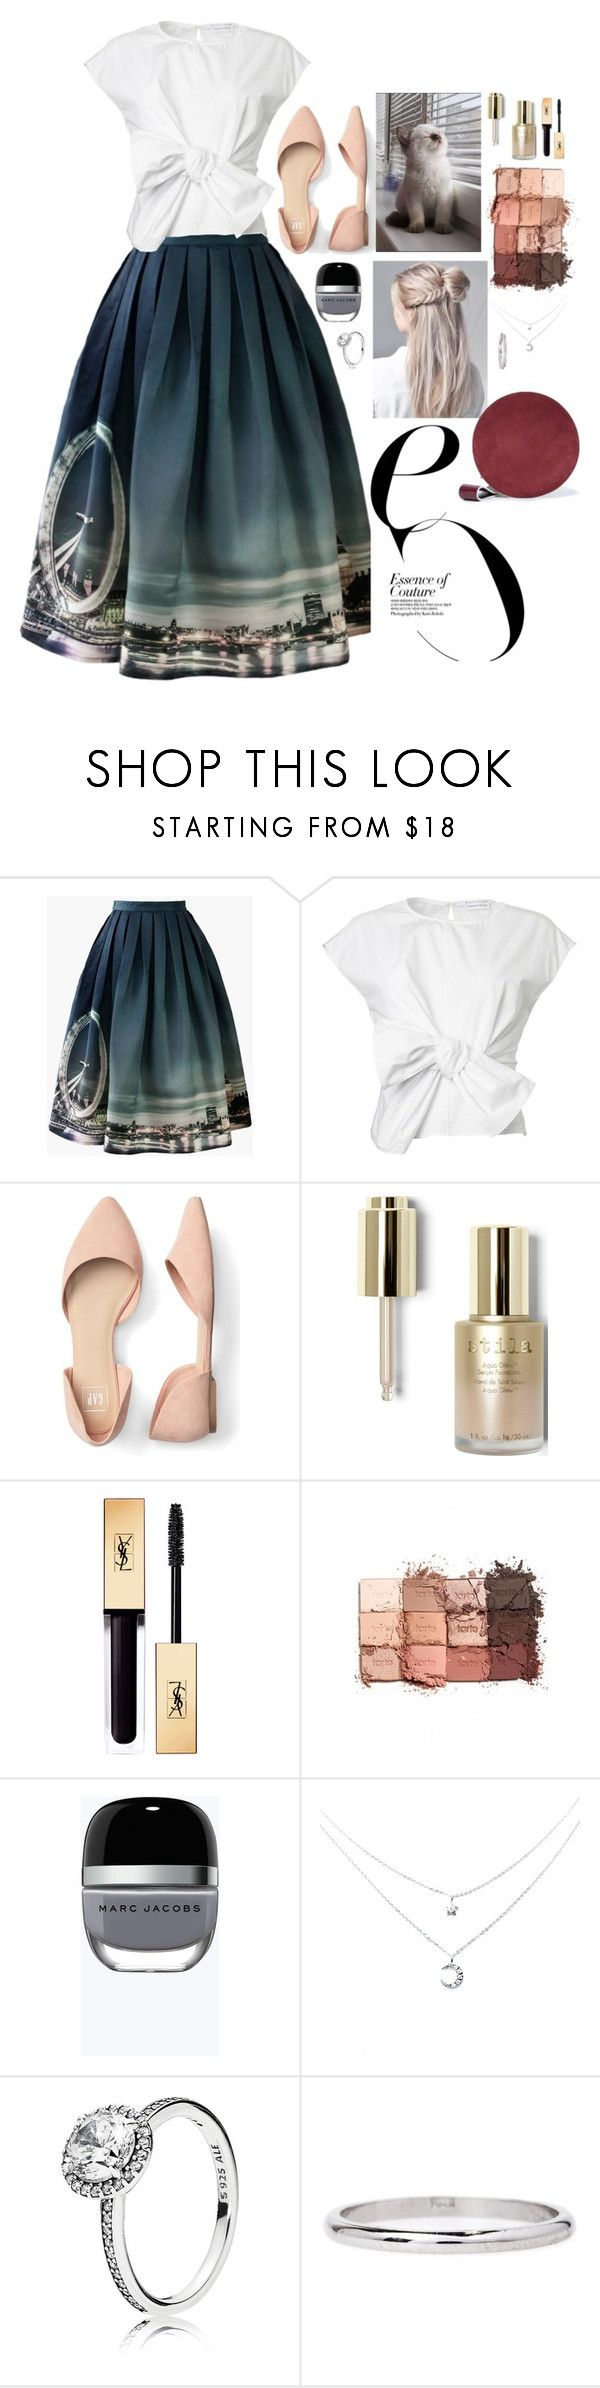 """Essence of couture"" by youngsmile ❤ liked on Polyvore featuring Chicwish, Stila, tarte, Marc Jacobs, Pandora and Diane Von Furstenberg"